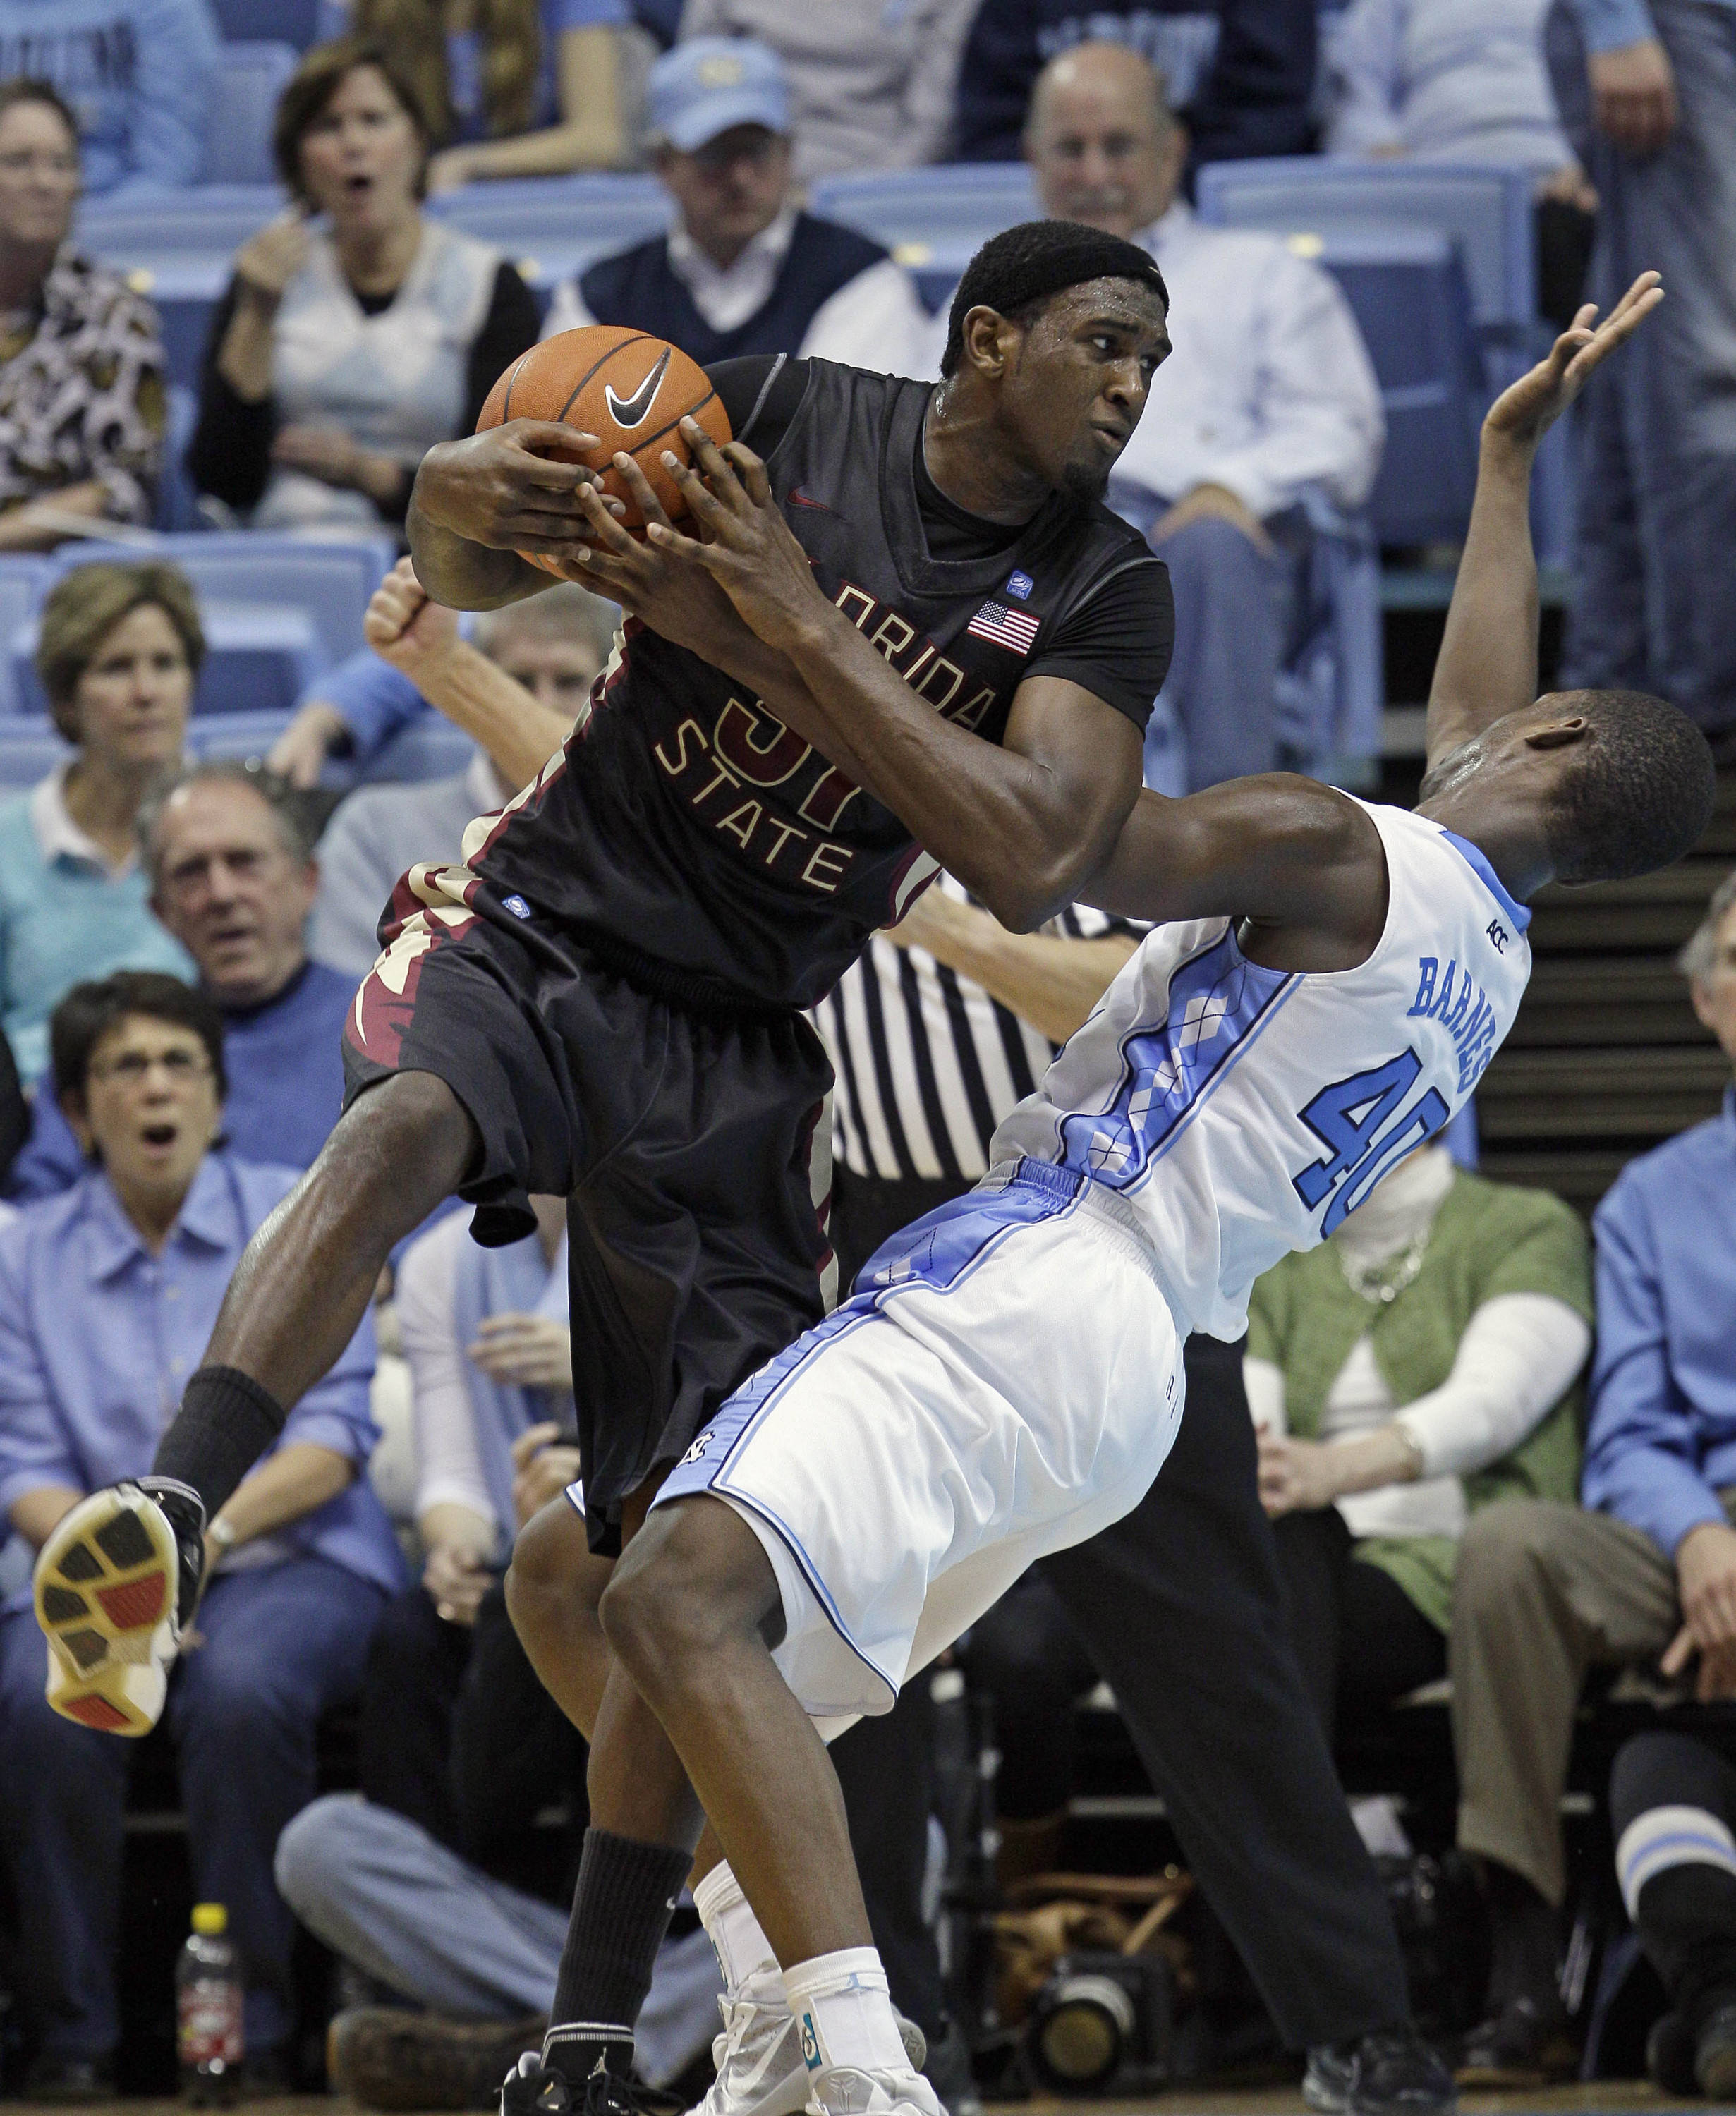 North Carolina's Harrison Barnes (40) and Florida State's Chris Singleton (31) collide during the second half of an NCAA college basketball game, Sunday, Feb. 6, 2011, in Chapel Hill, N.C. (AP Photo/Gerry Broome)